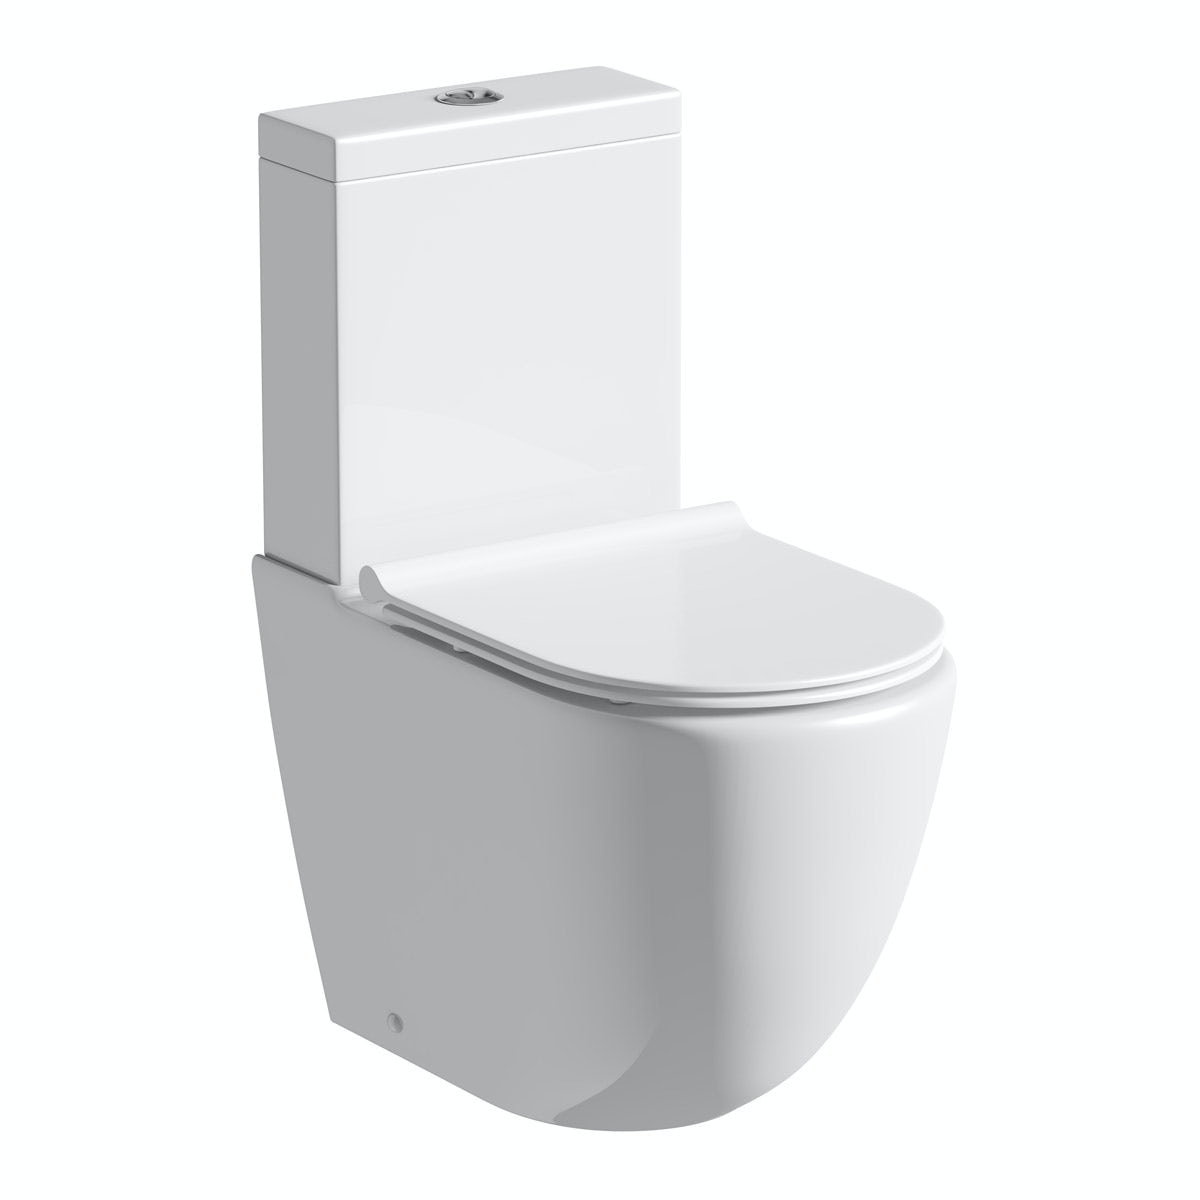 Mode Harrison rimless close coupled toilet with slimline soft close seat